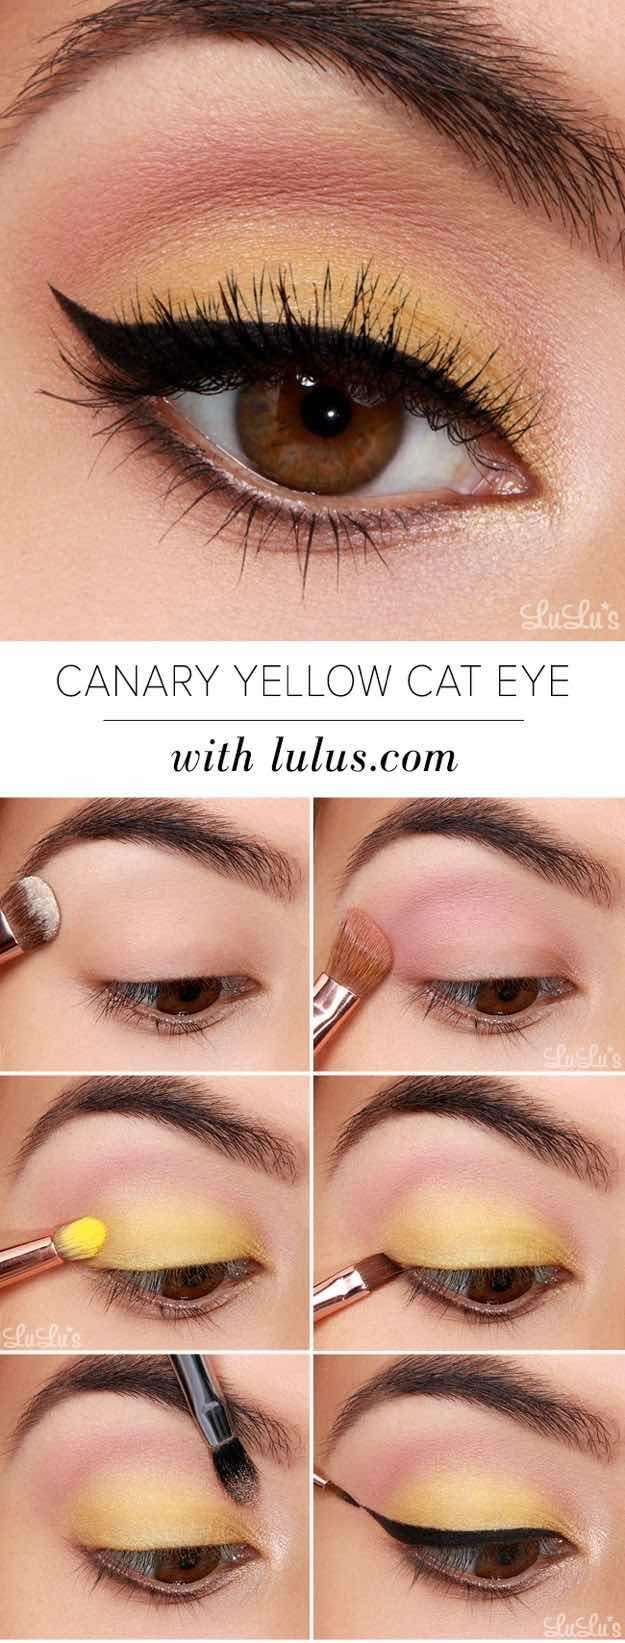 Yellow And Black Eye Makeup Best Ideas For Makeup Tutorials Yellow Shadow With Black Flick